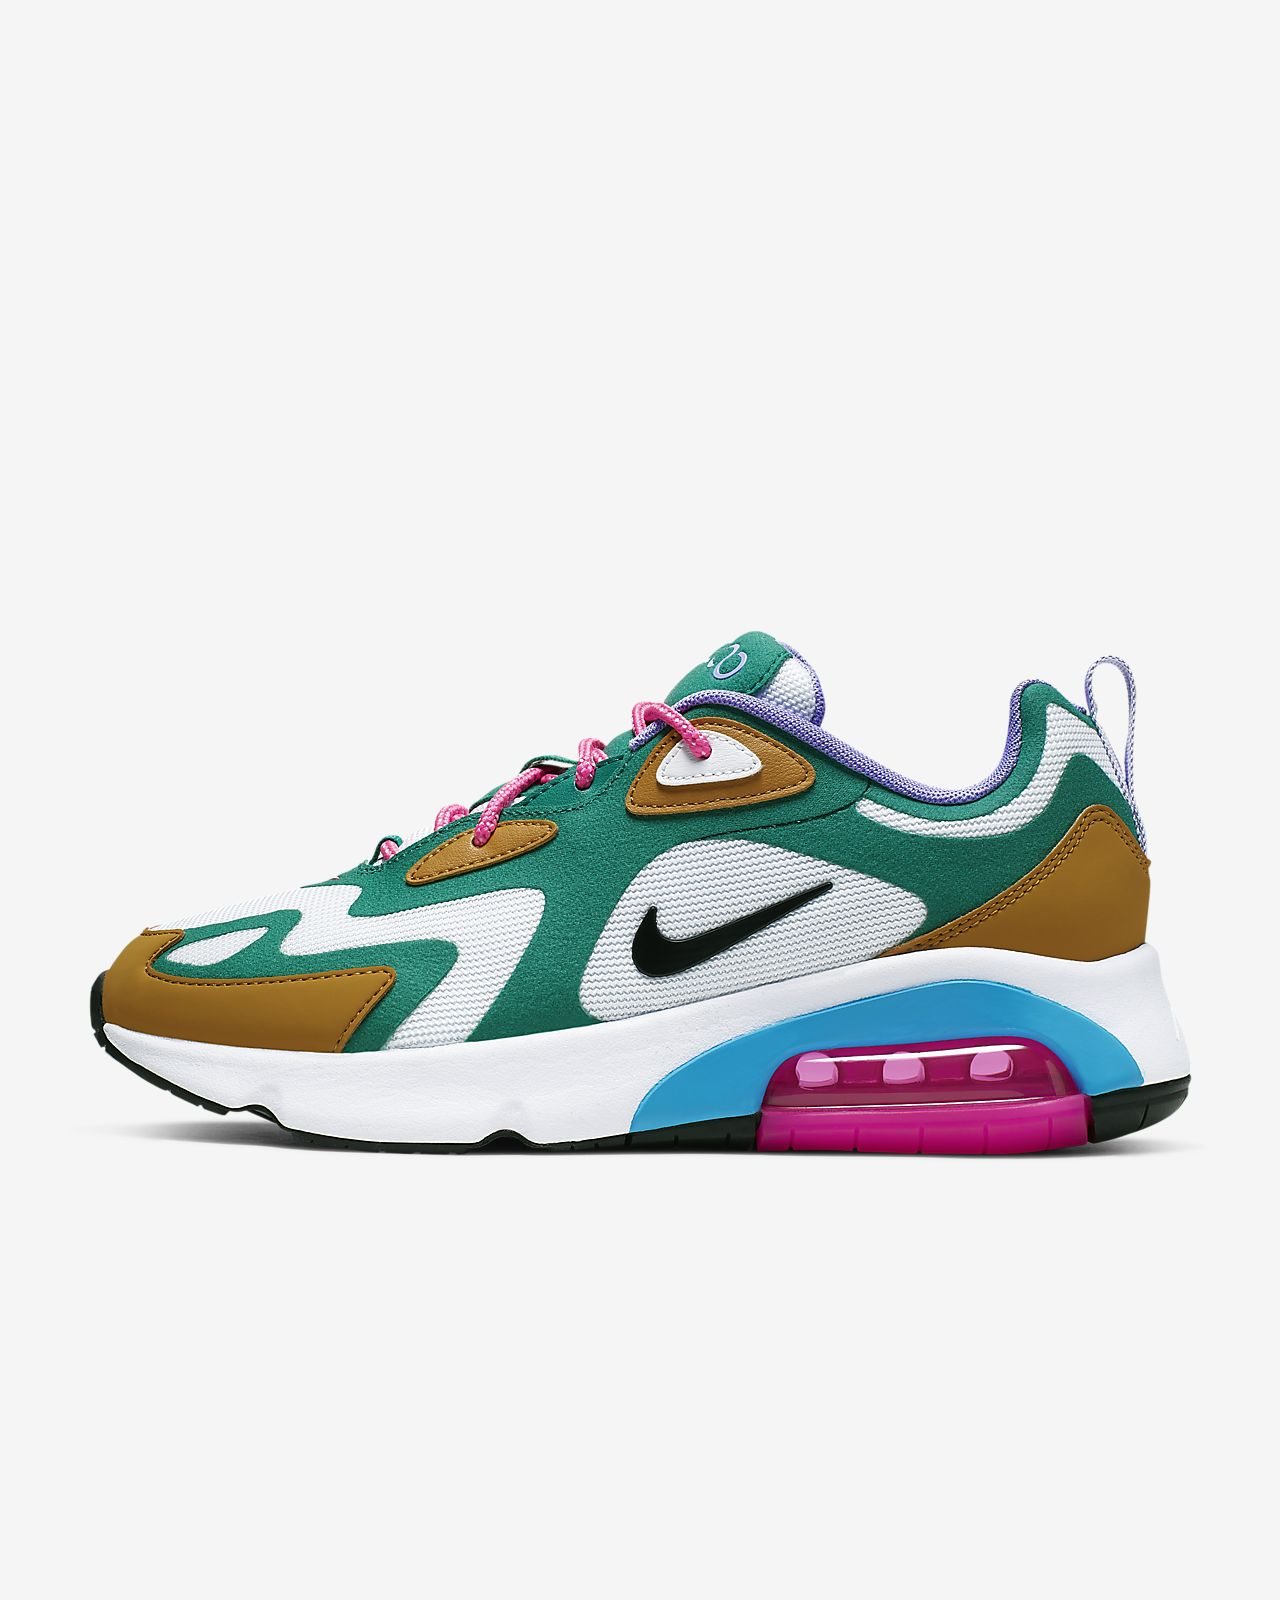 Nike Air Max 200 Damenschuh